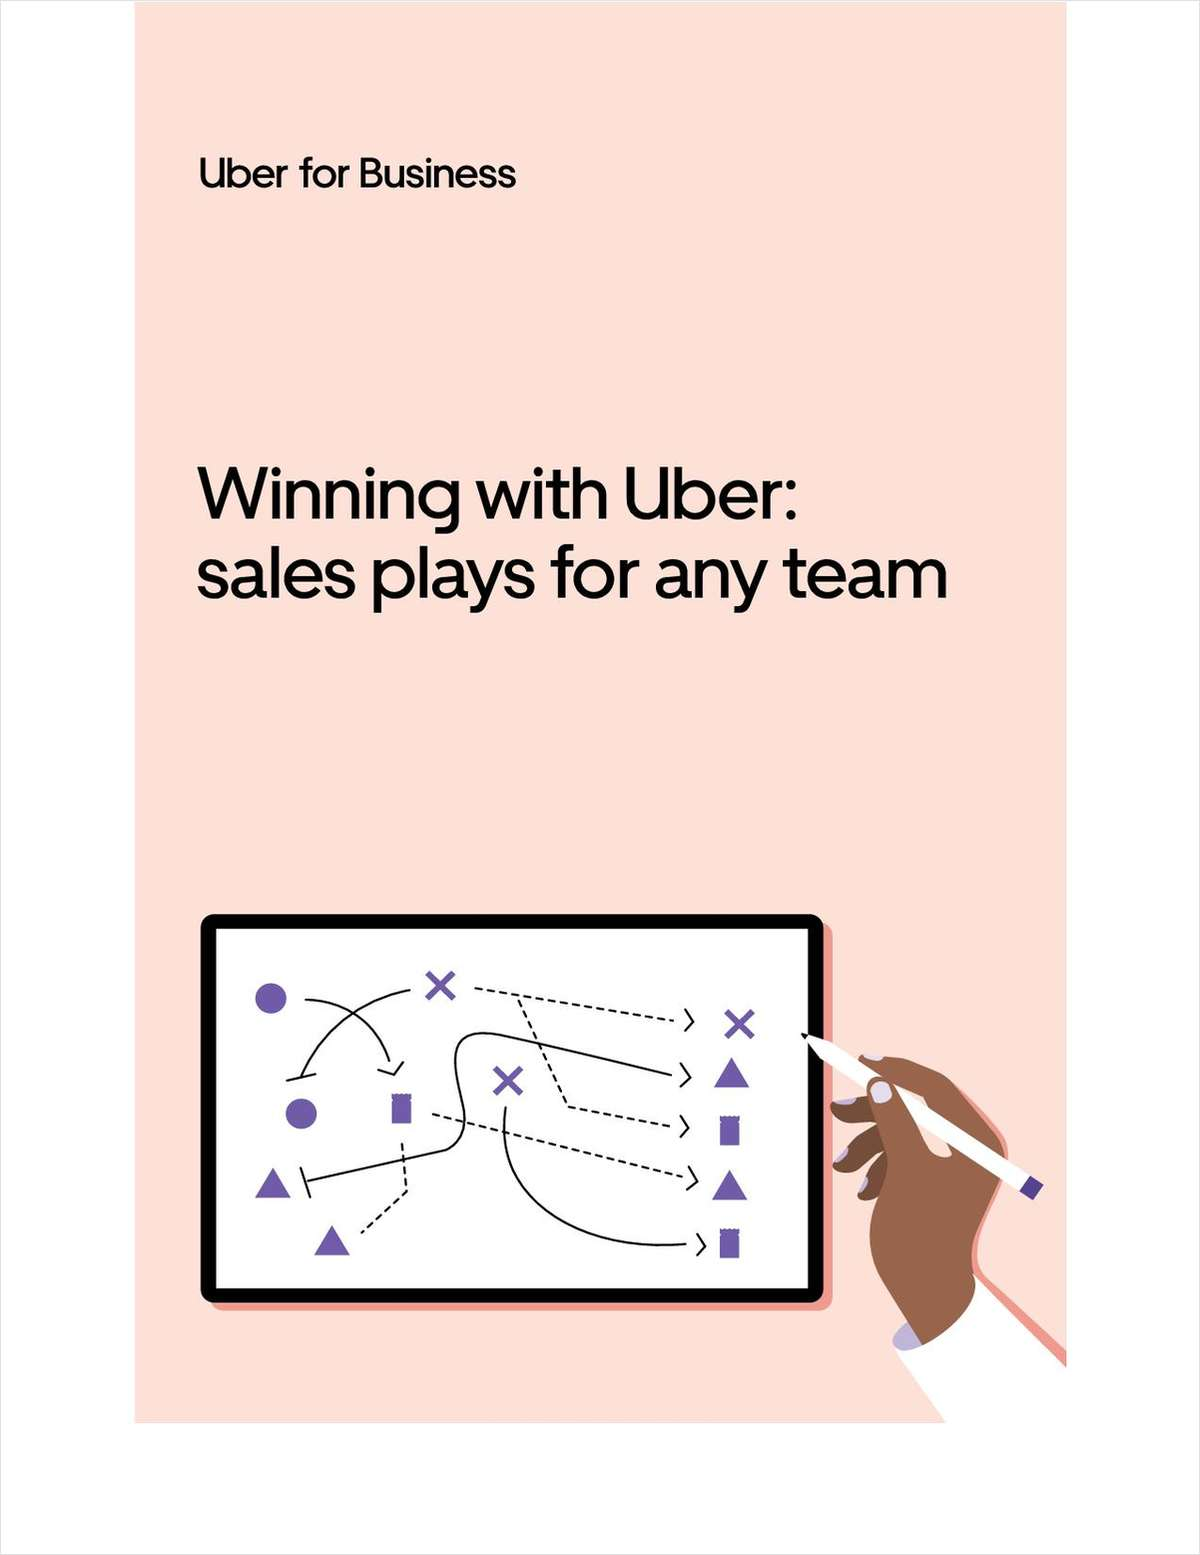 Winning with Uber: sales plays for any team